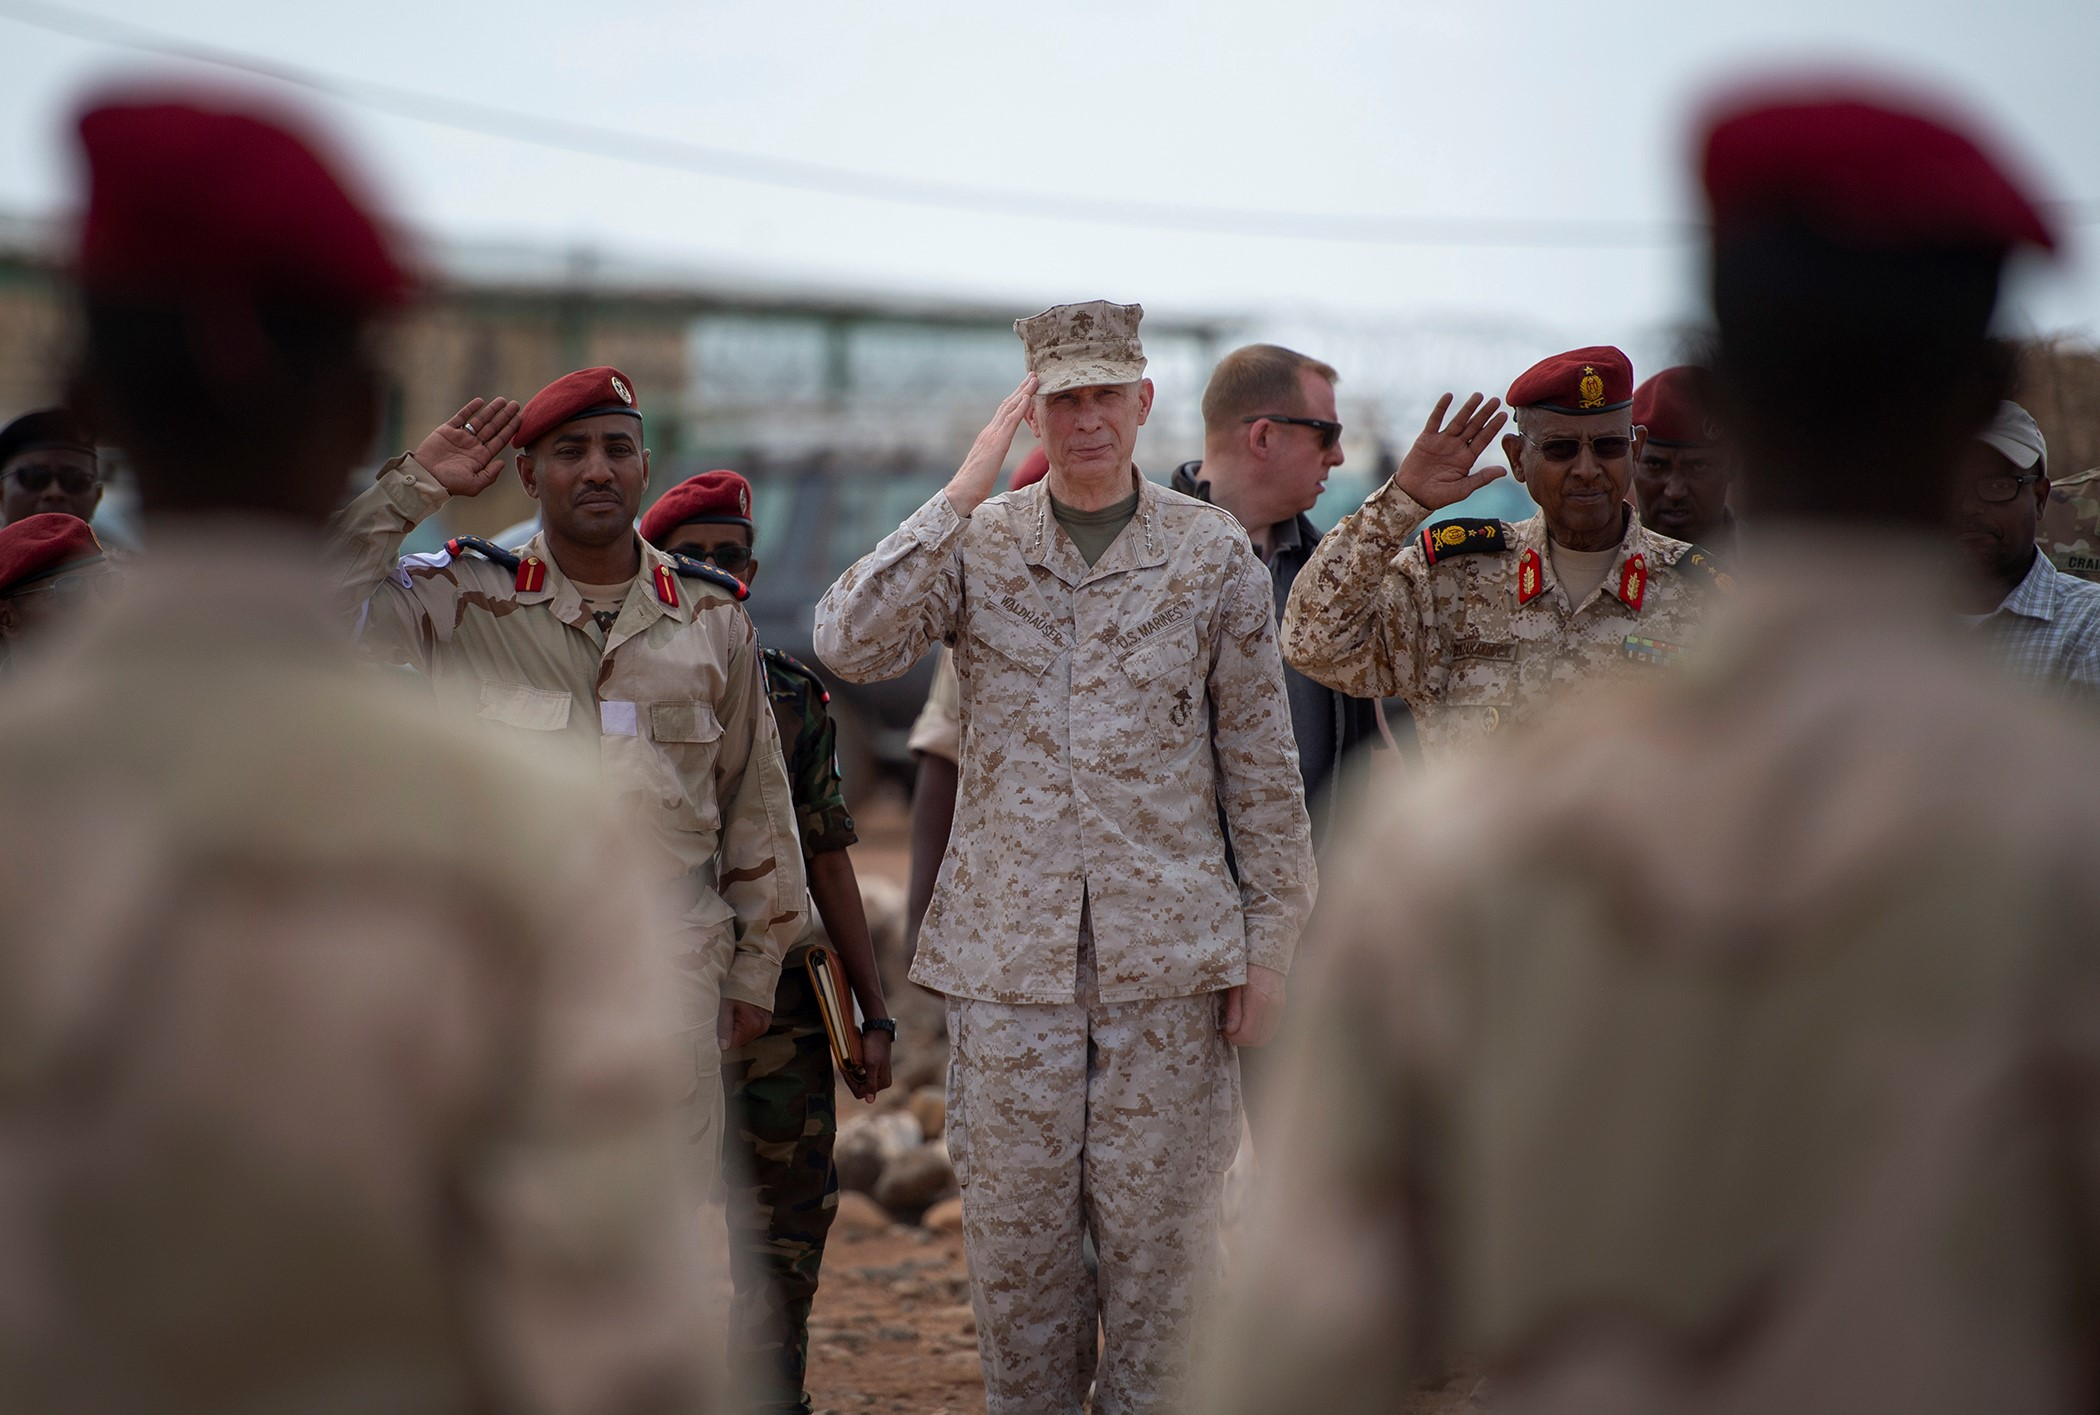 U.S. Marine Corps Gen. Thomas D. Waldhauser, commander of U.S. Africa Command, salutes prior to a demonstration by soldiers from the Djiboutian army's elite military force, the Rapid Intervention Battalion, during a visit with senior Djiboutian officials, including Chief of General Staff of the Djibouti Armed Forces Gen. Zakaria Cheikh Ibrahim, at a training base in Djibouti, March 21, 2019. Waldhauser visited in order to discuss the growth and development of Djiboutian security forces. (U.S. Air Force photo by Tech. Sgt. Shawn Nickel)